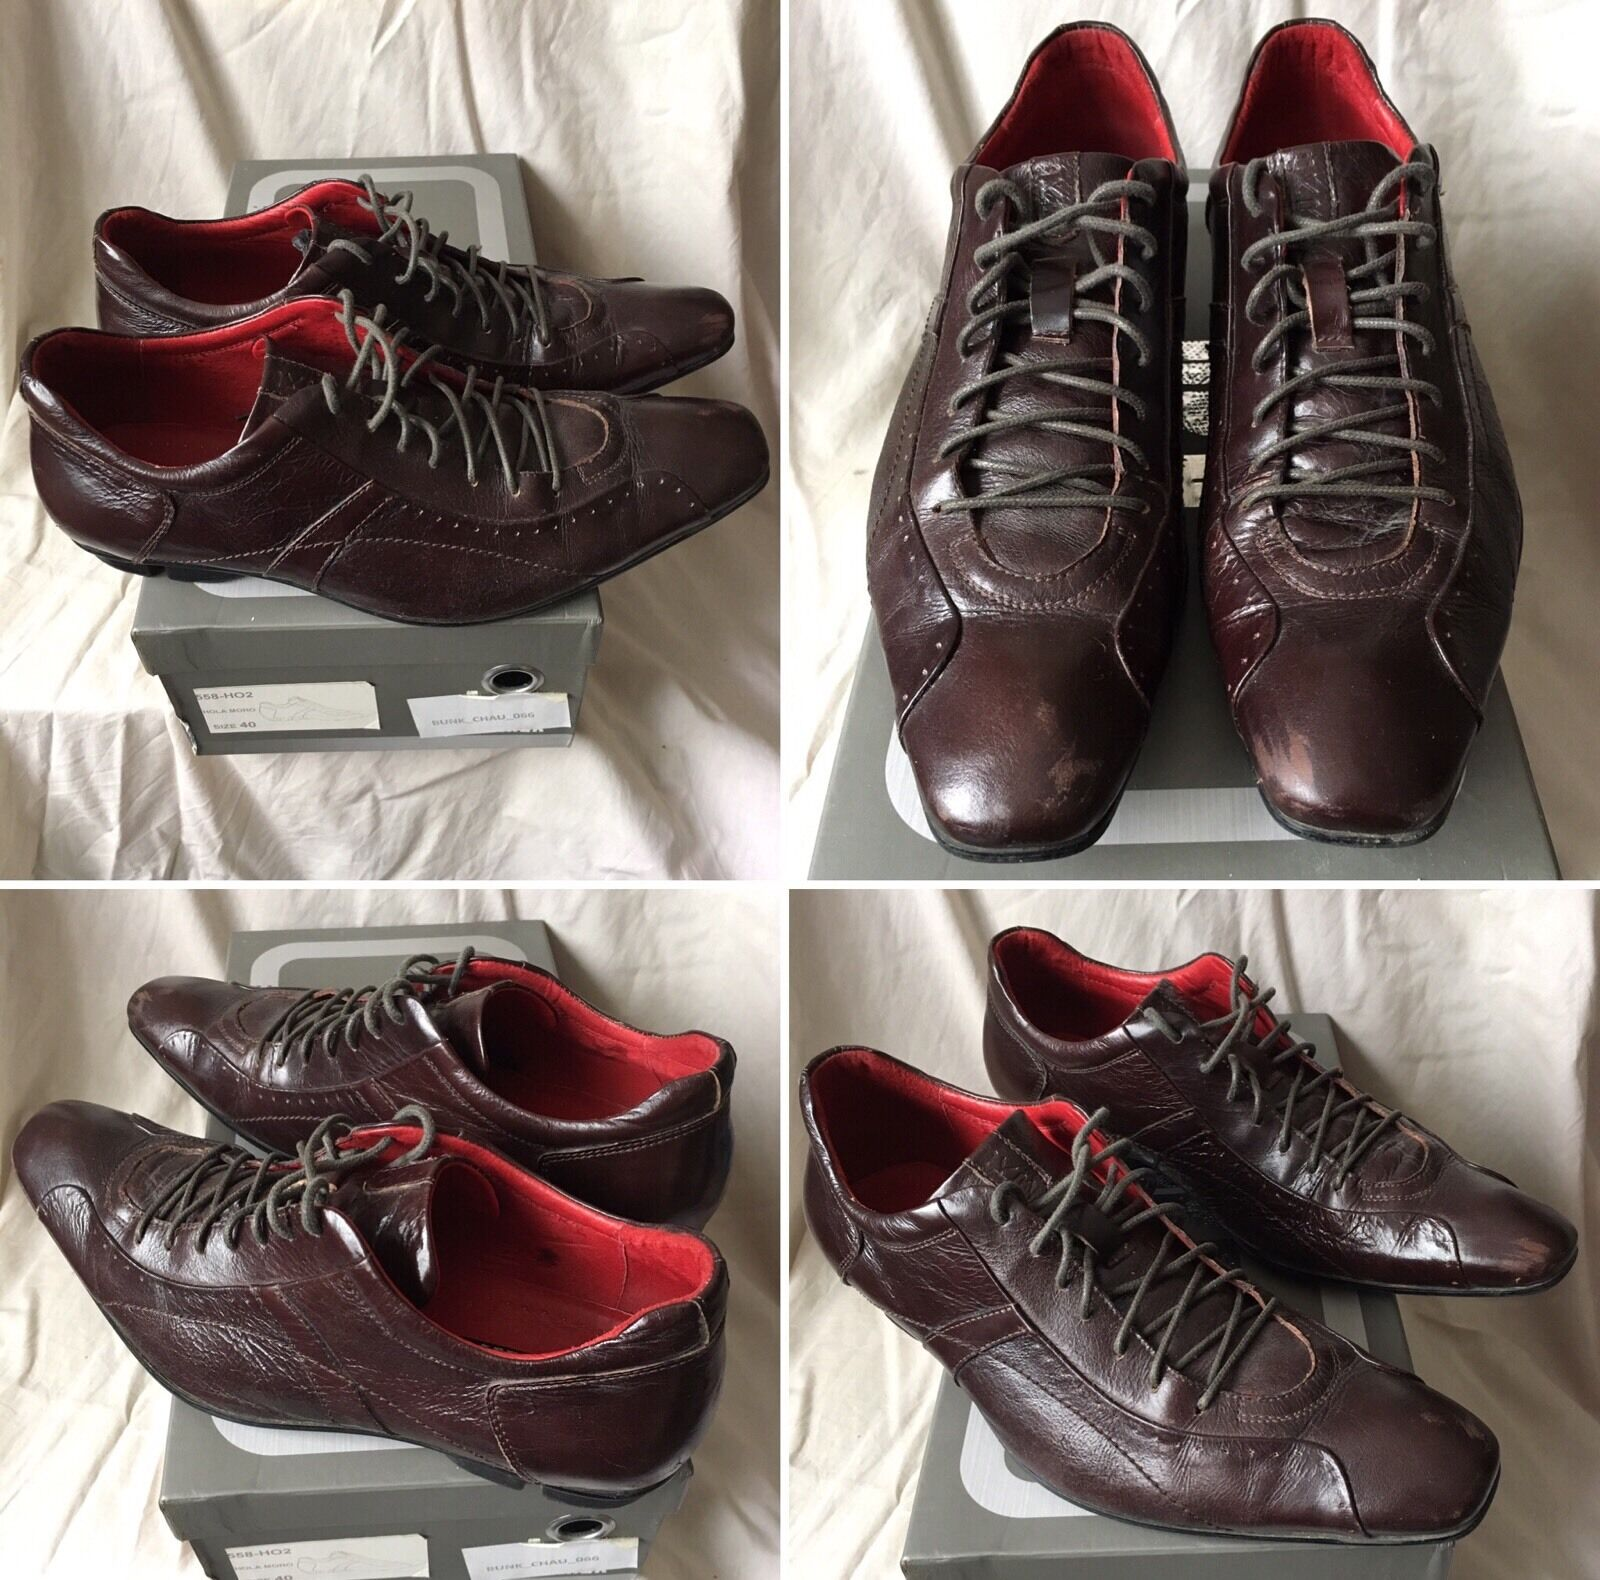 SOLD OUT RARE BROWN BUNKER BKR LEATHER SHOES shoes SIZE 40